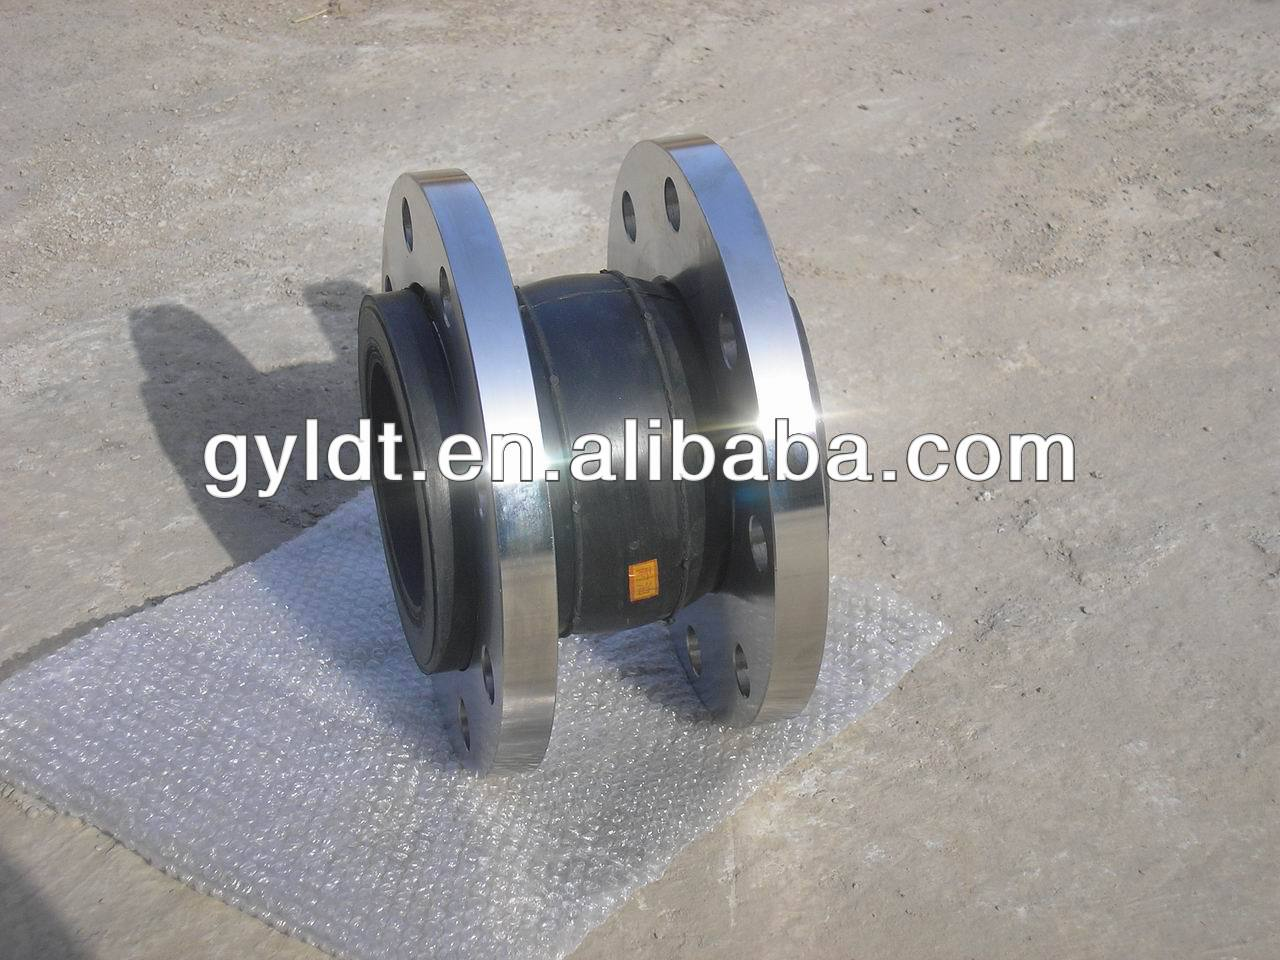 Flexible Single-ball Rubber Expansion Joints for Pipe